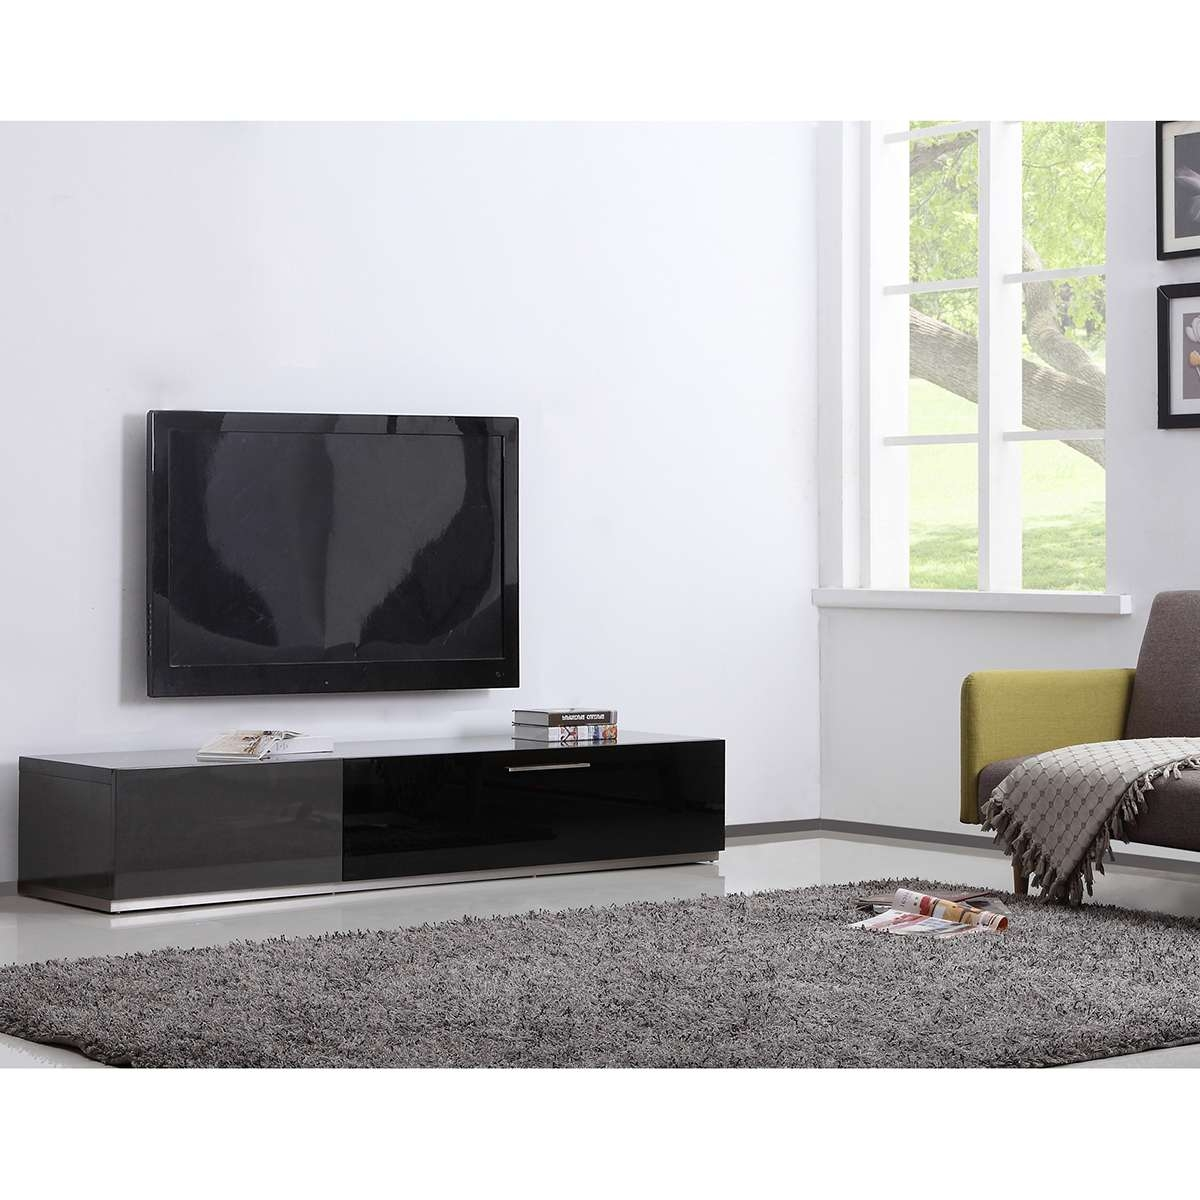 "B Modern Bm 150 Gry Producer 80"" Contemporary Tv Stand In Grey Throughout Modern Contemporary Tv Stands (View 7 of 20)"